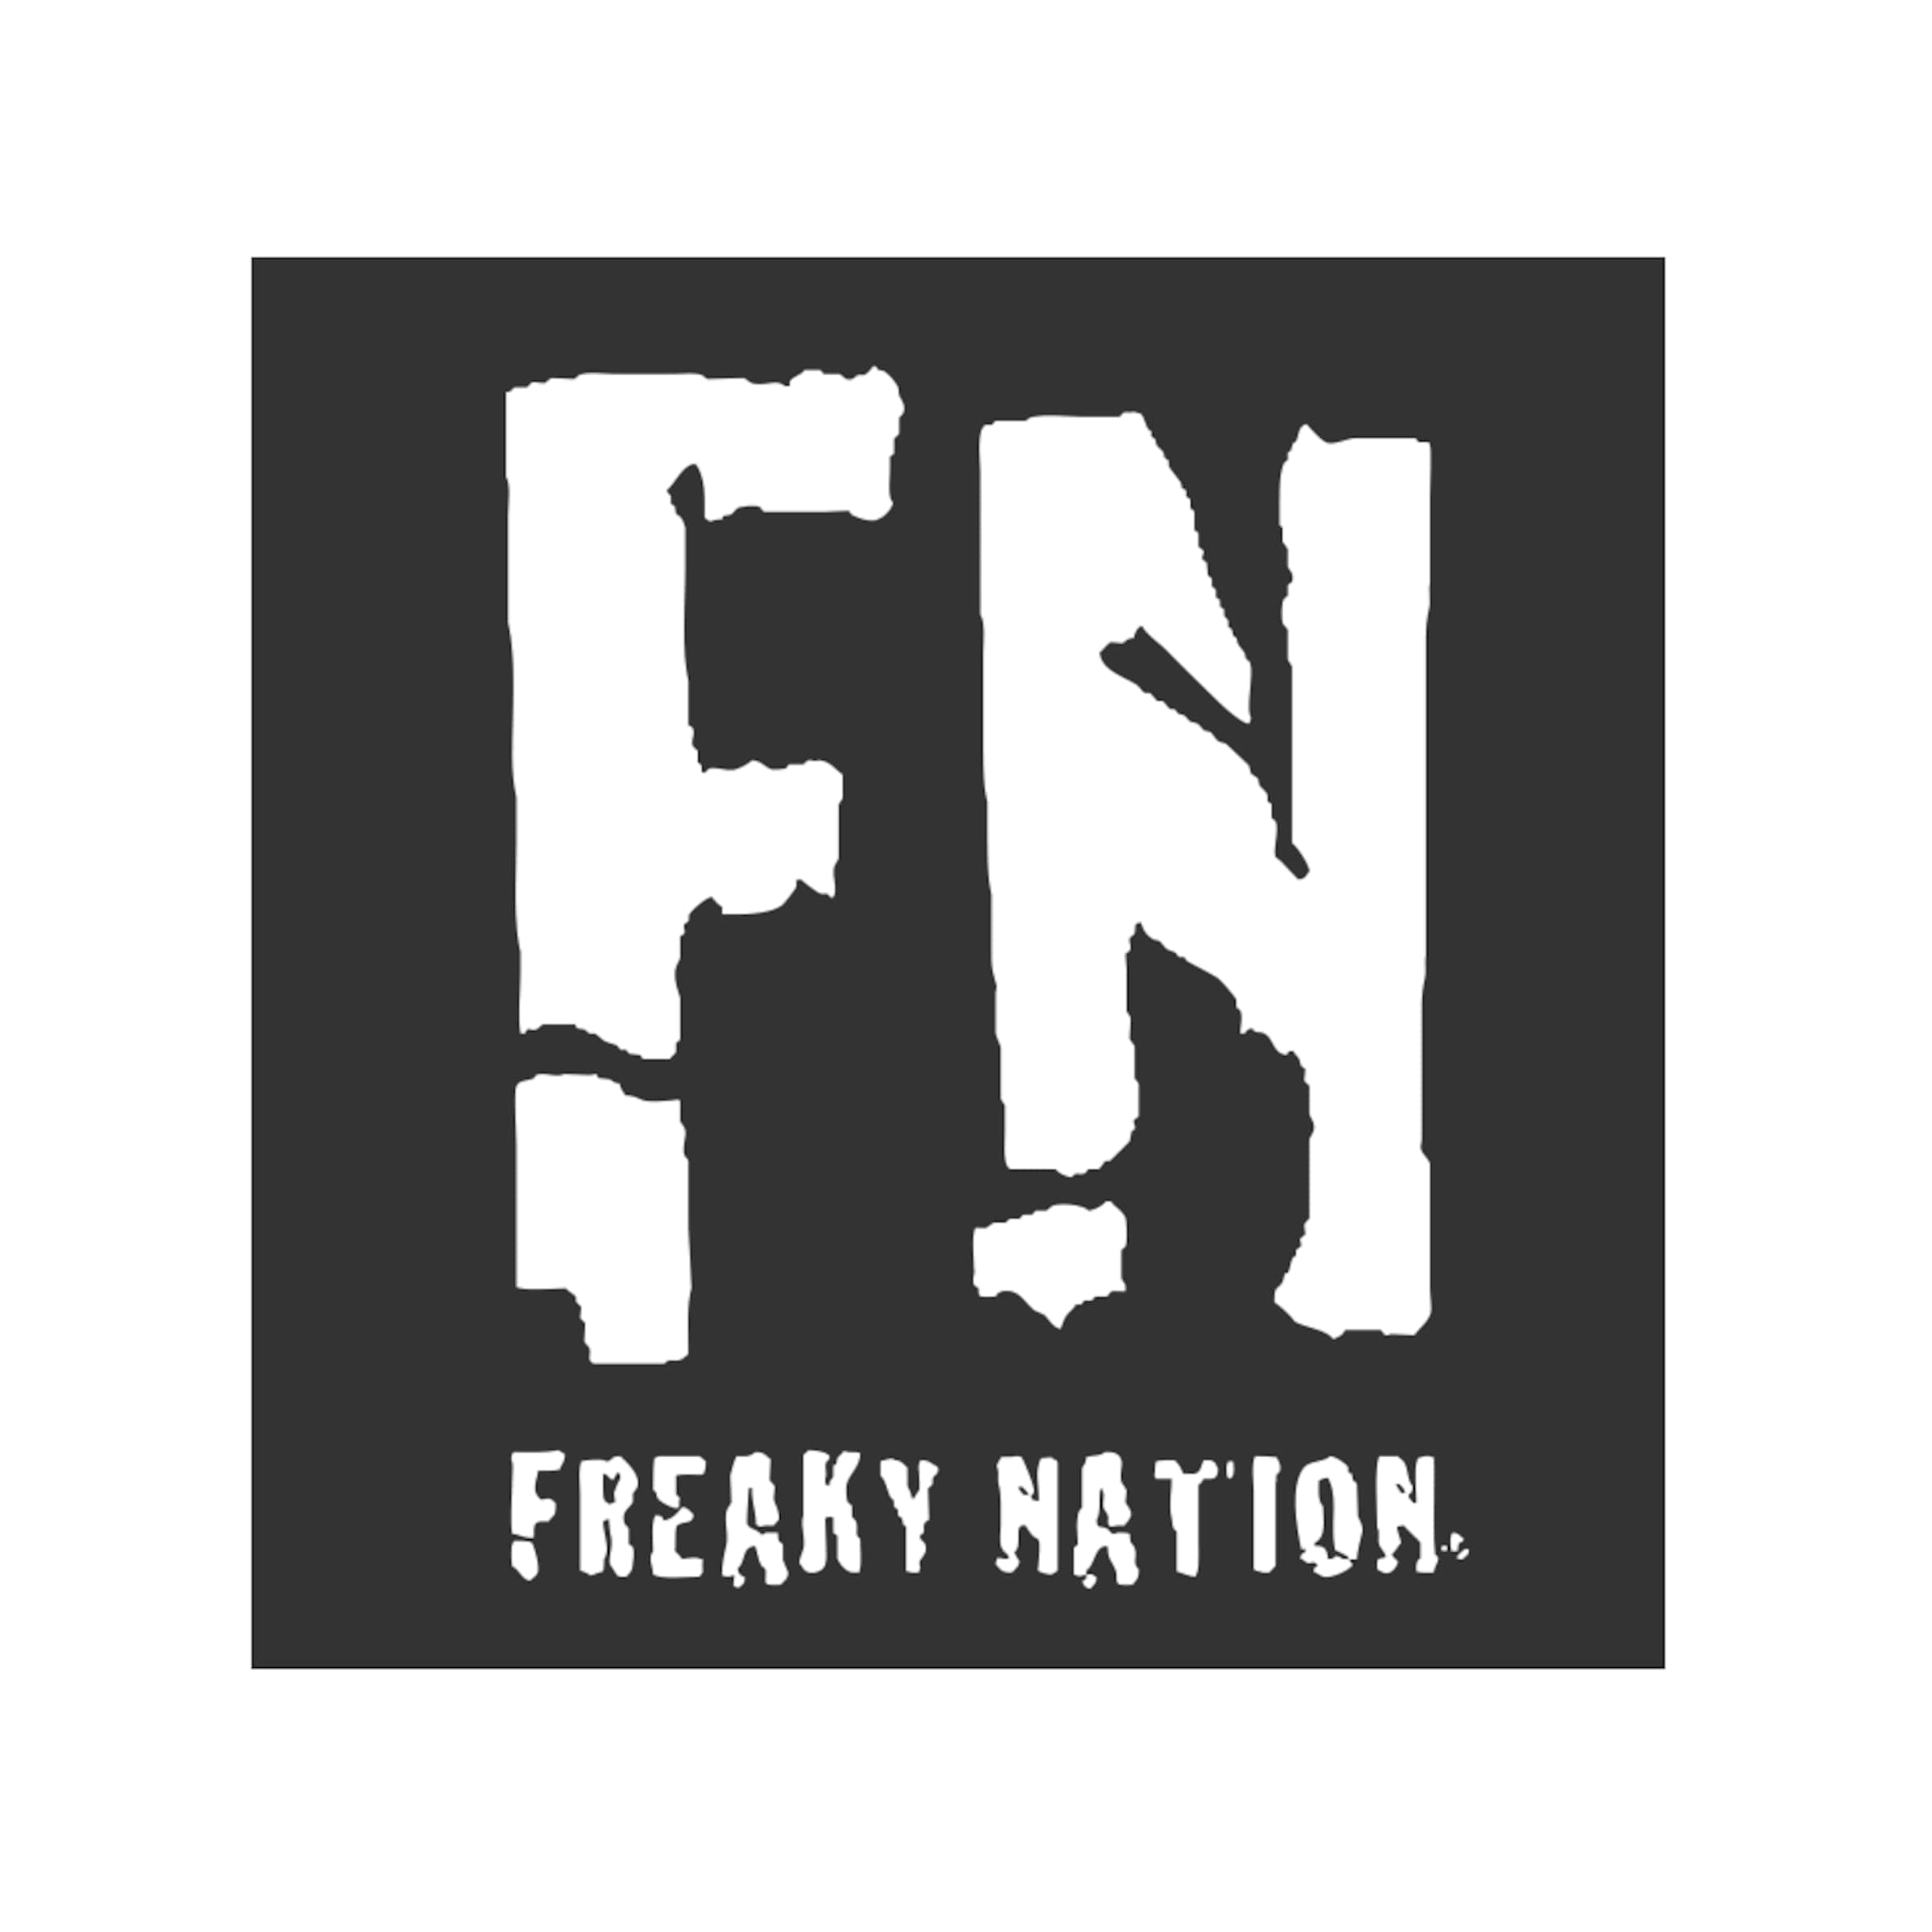 FREAKY NATION